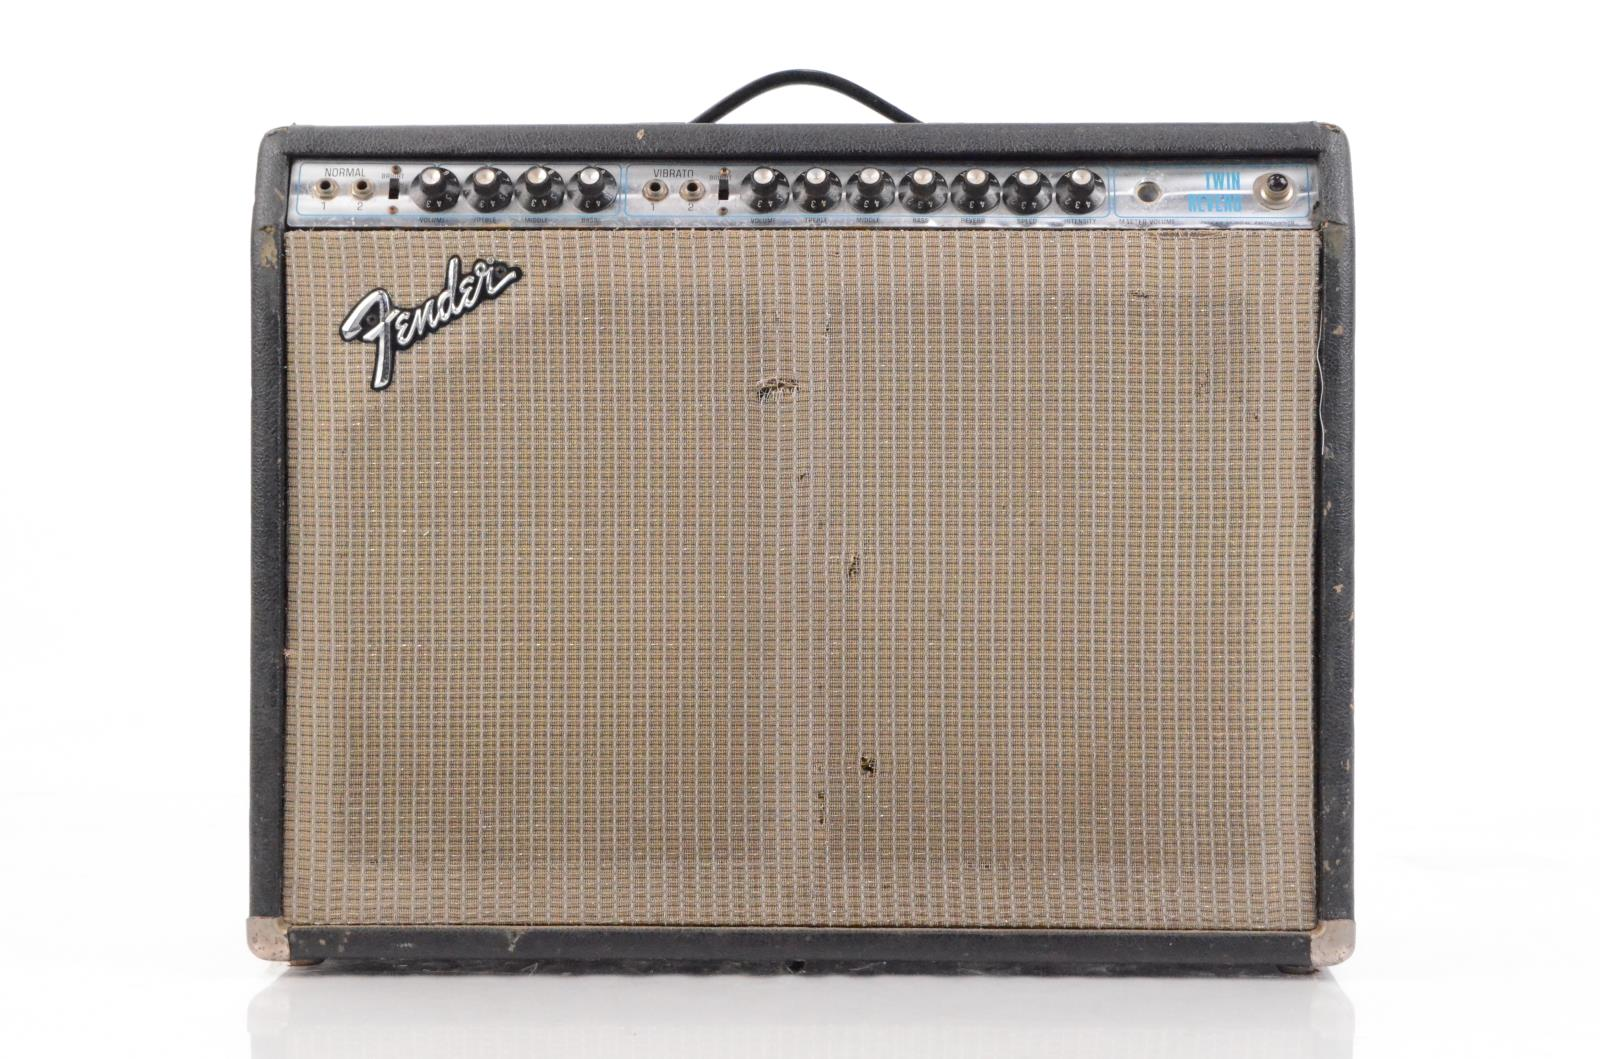 1974 Fender Twin Reverb Silverface Amp Vintage Owned by Reinhold Mack #33882